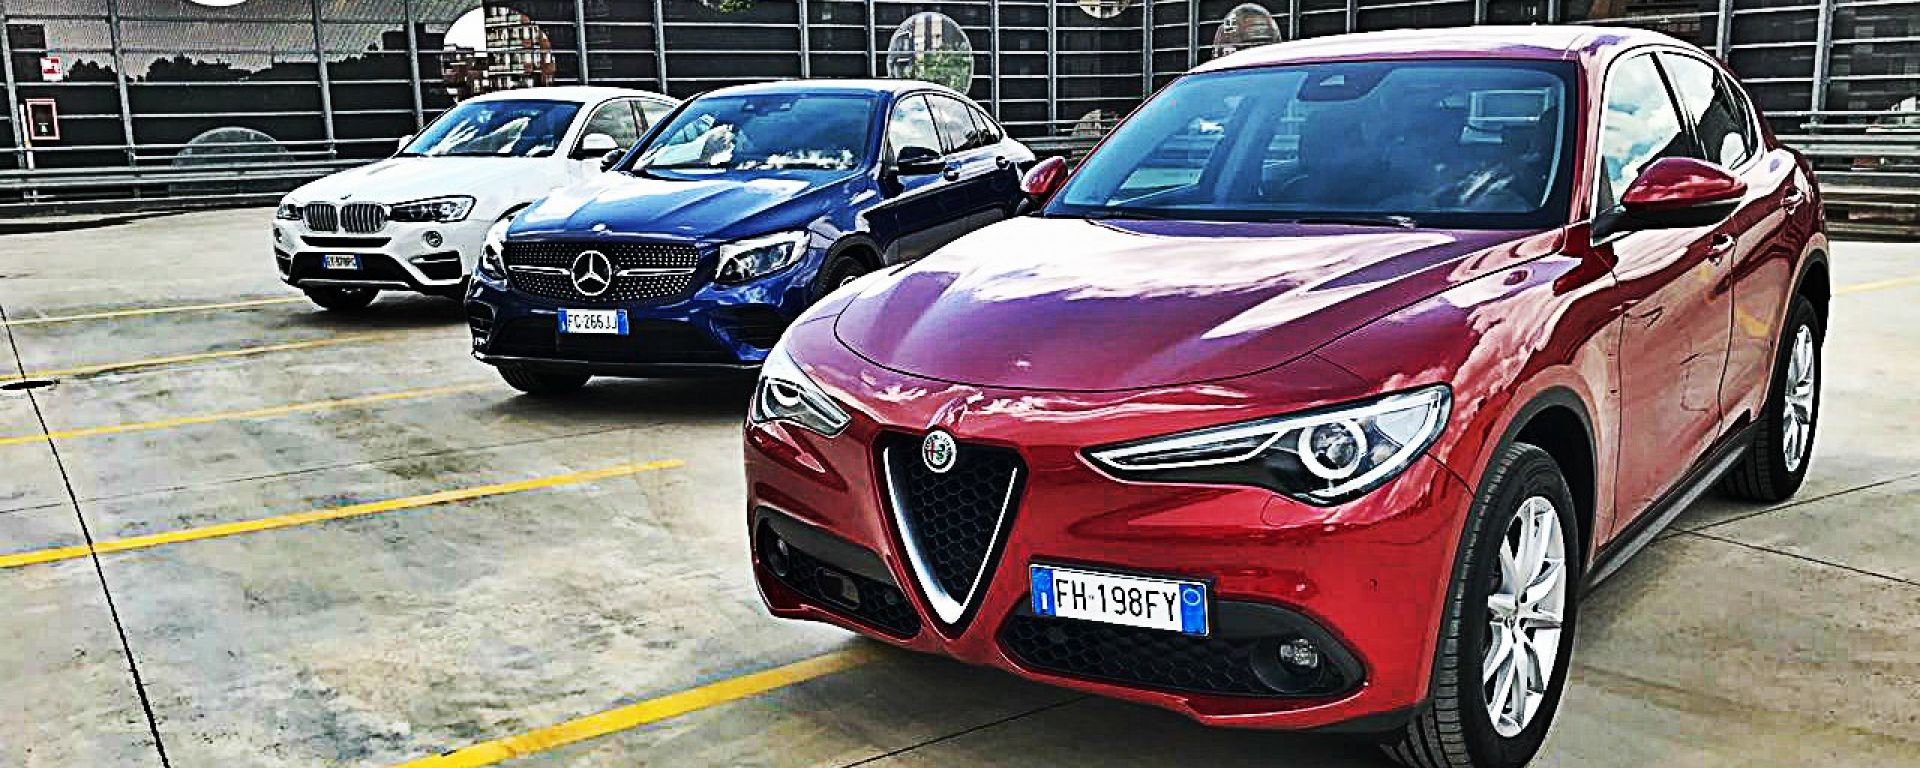 Alfa Romeo Stelvio vs Mercedes GLC Coupé vs BMW X4